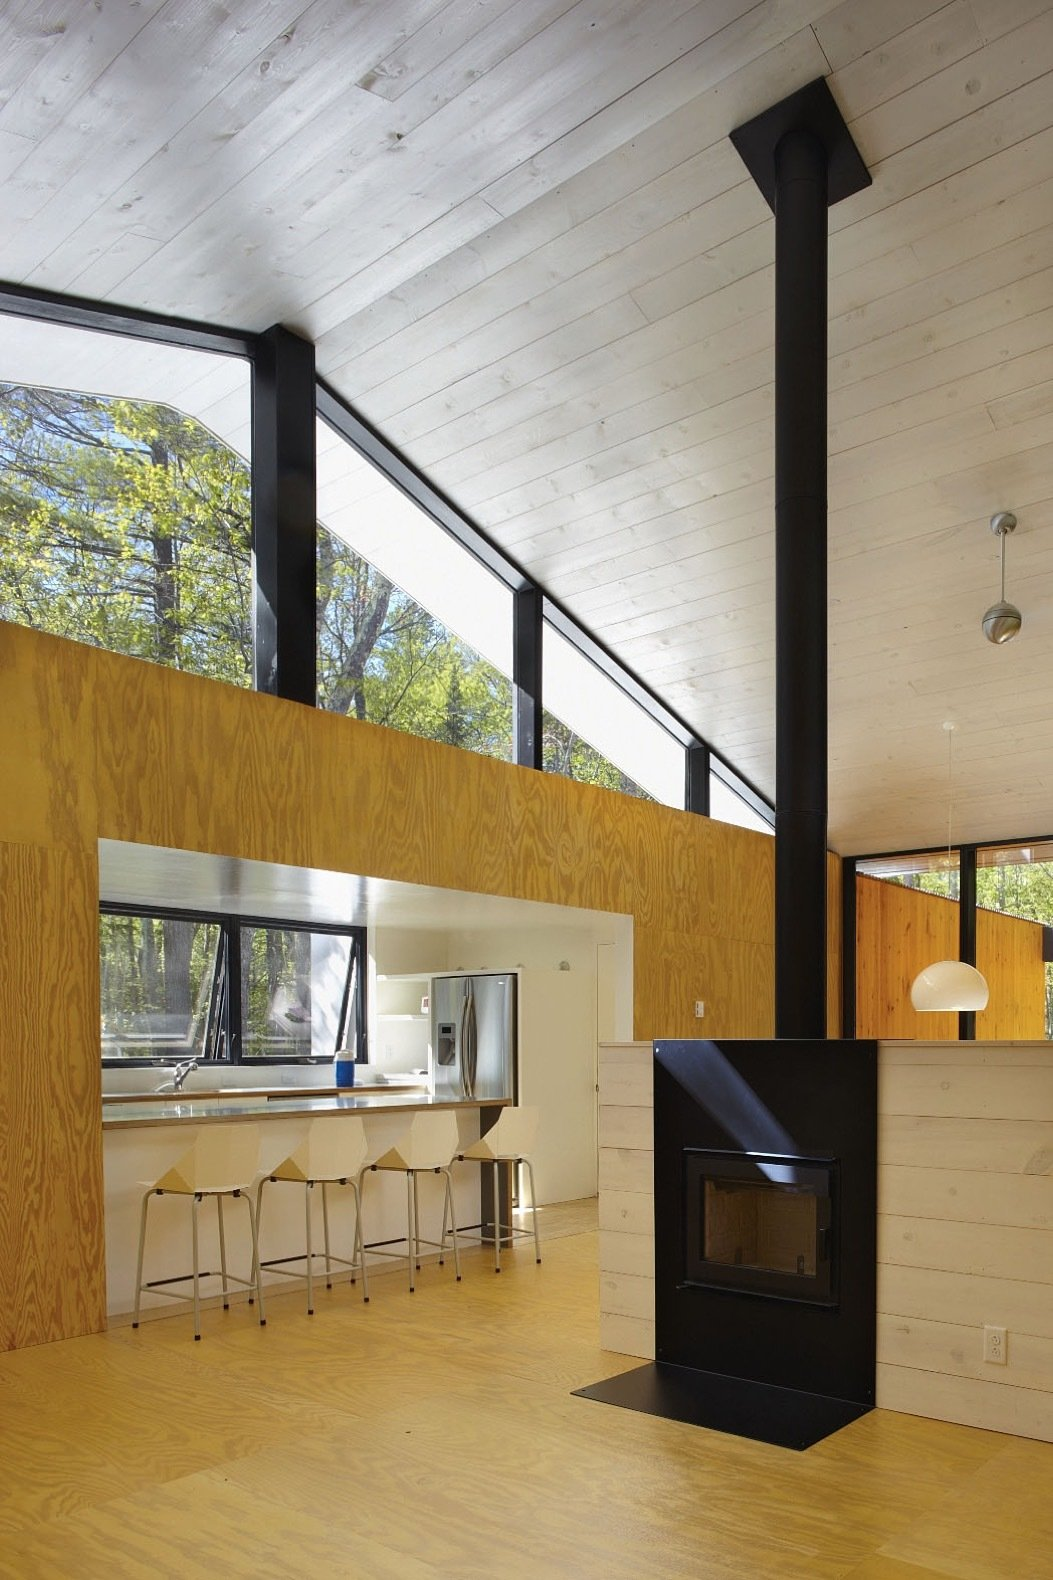 Windows and Metal Clerestory windows bring in additional light and views of the forest canopy.   Photo 13 of 15 in This Prefab Cabin Offers an Affordable Answer to Island Construction